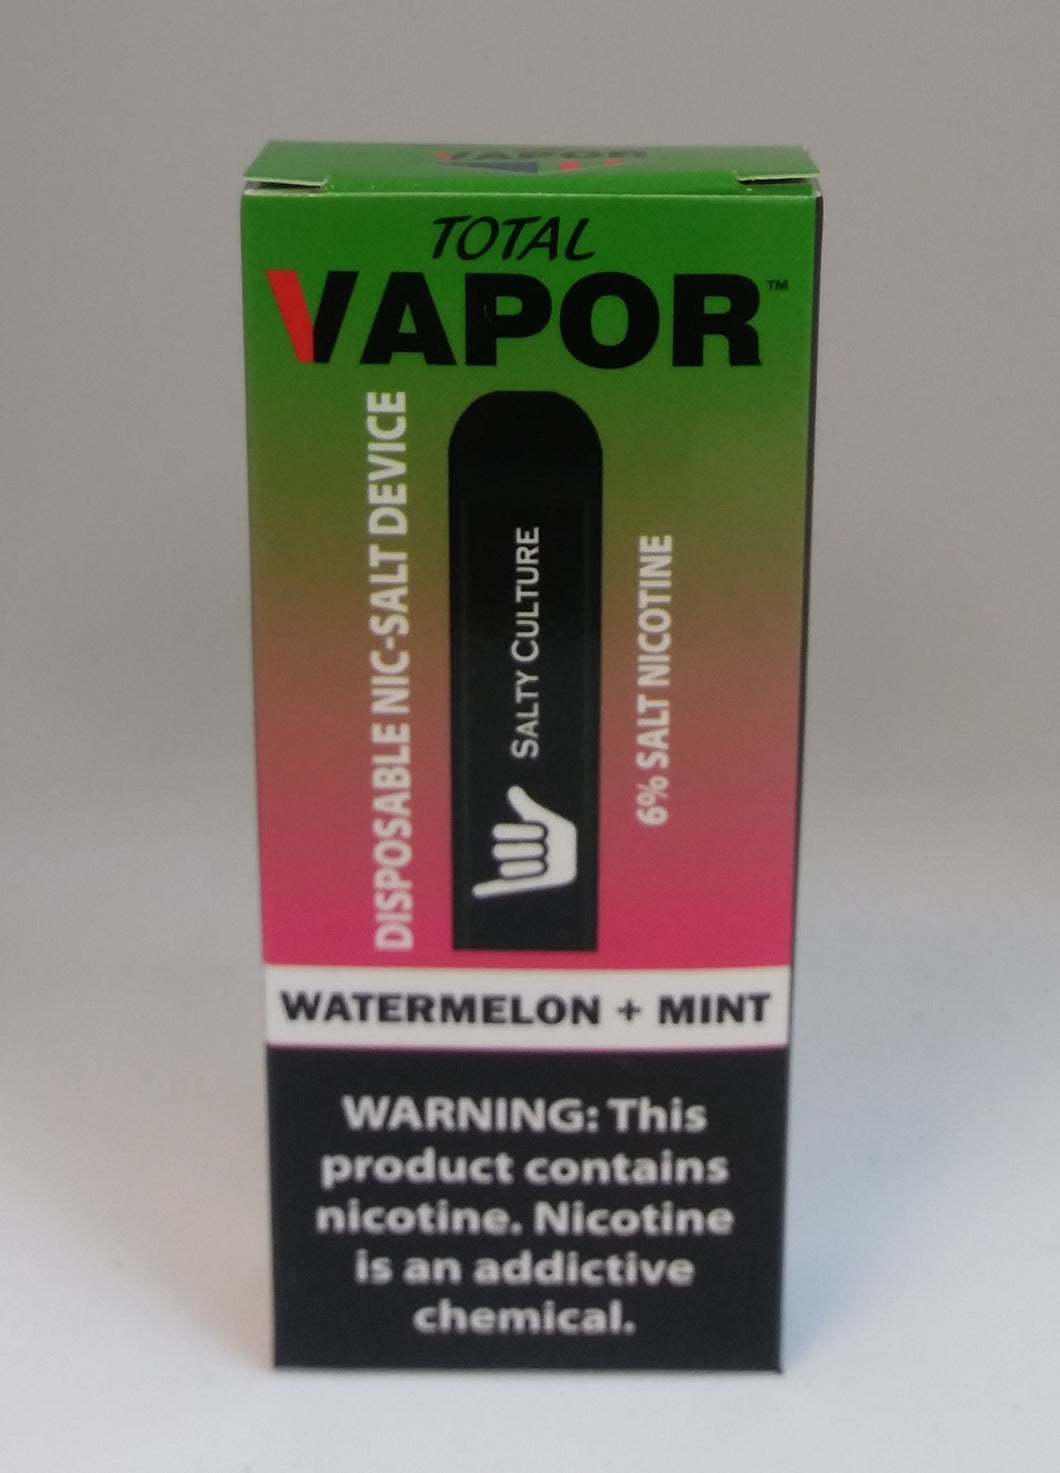 Total vapor - Disposable 6% salt nic device - watermelon+mint